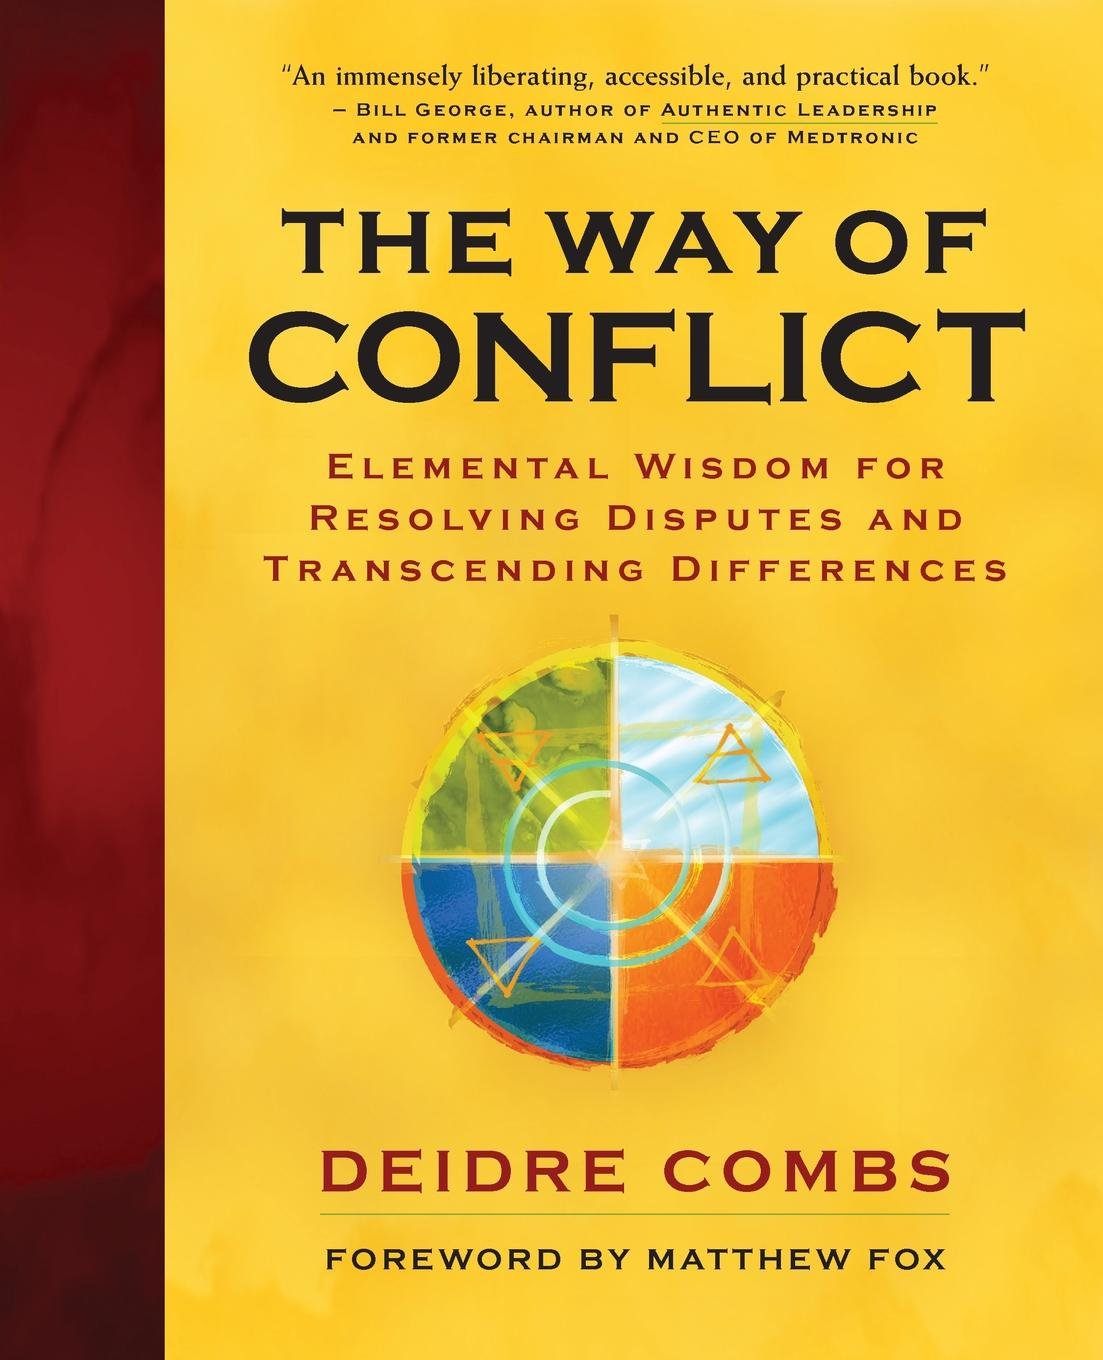 The Way Of Conflict: Elemental Wisdom For Resolving Disputes And  Transcending Differences: Deidrebs, Matthew Fox: 9781577314493:  Amazon: Books